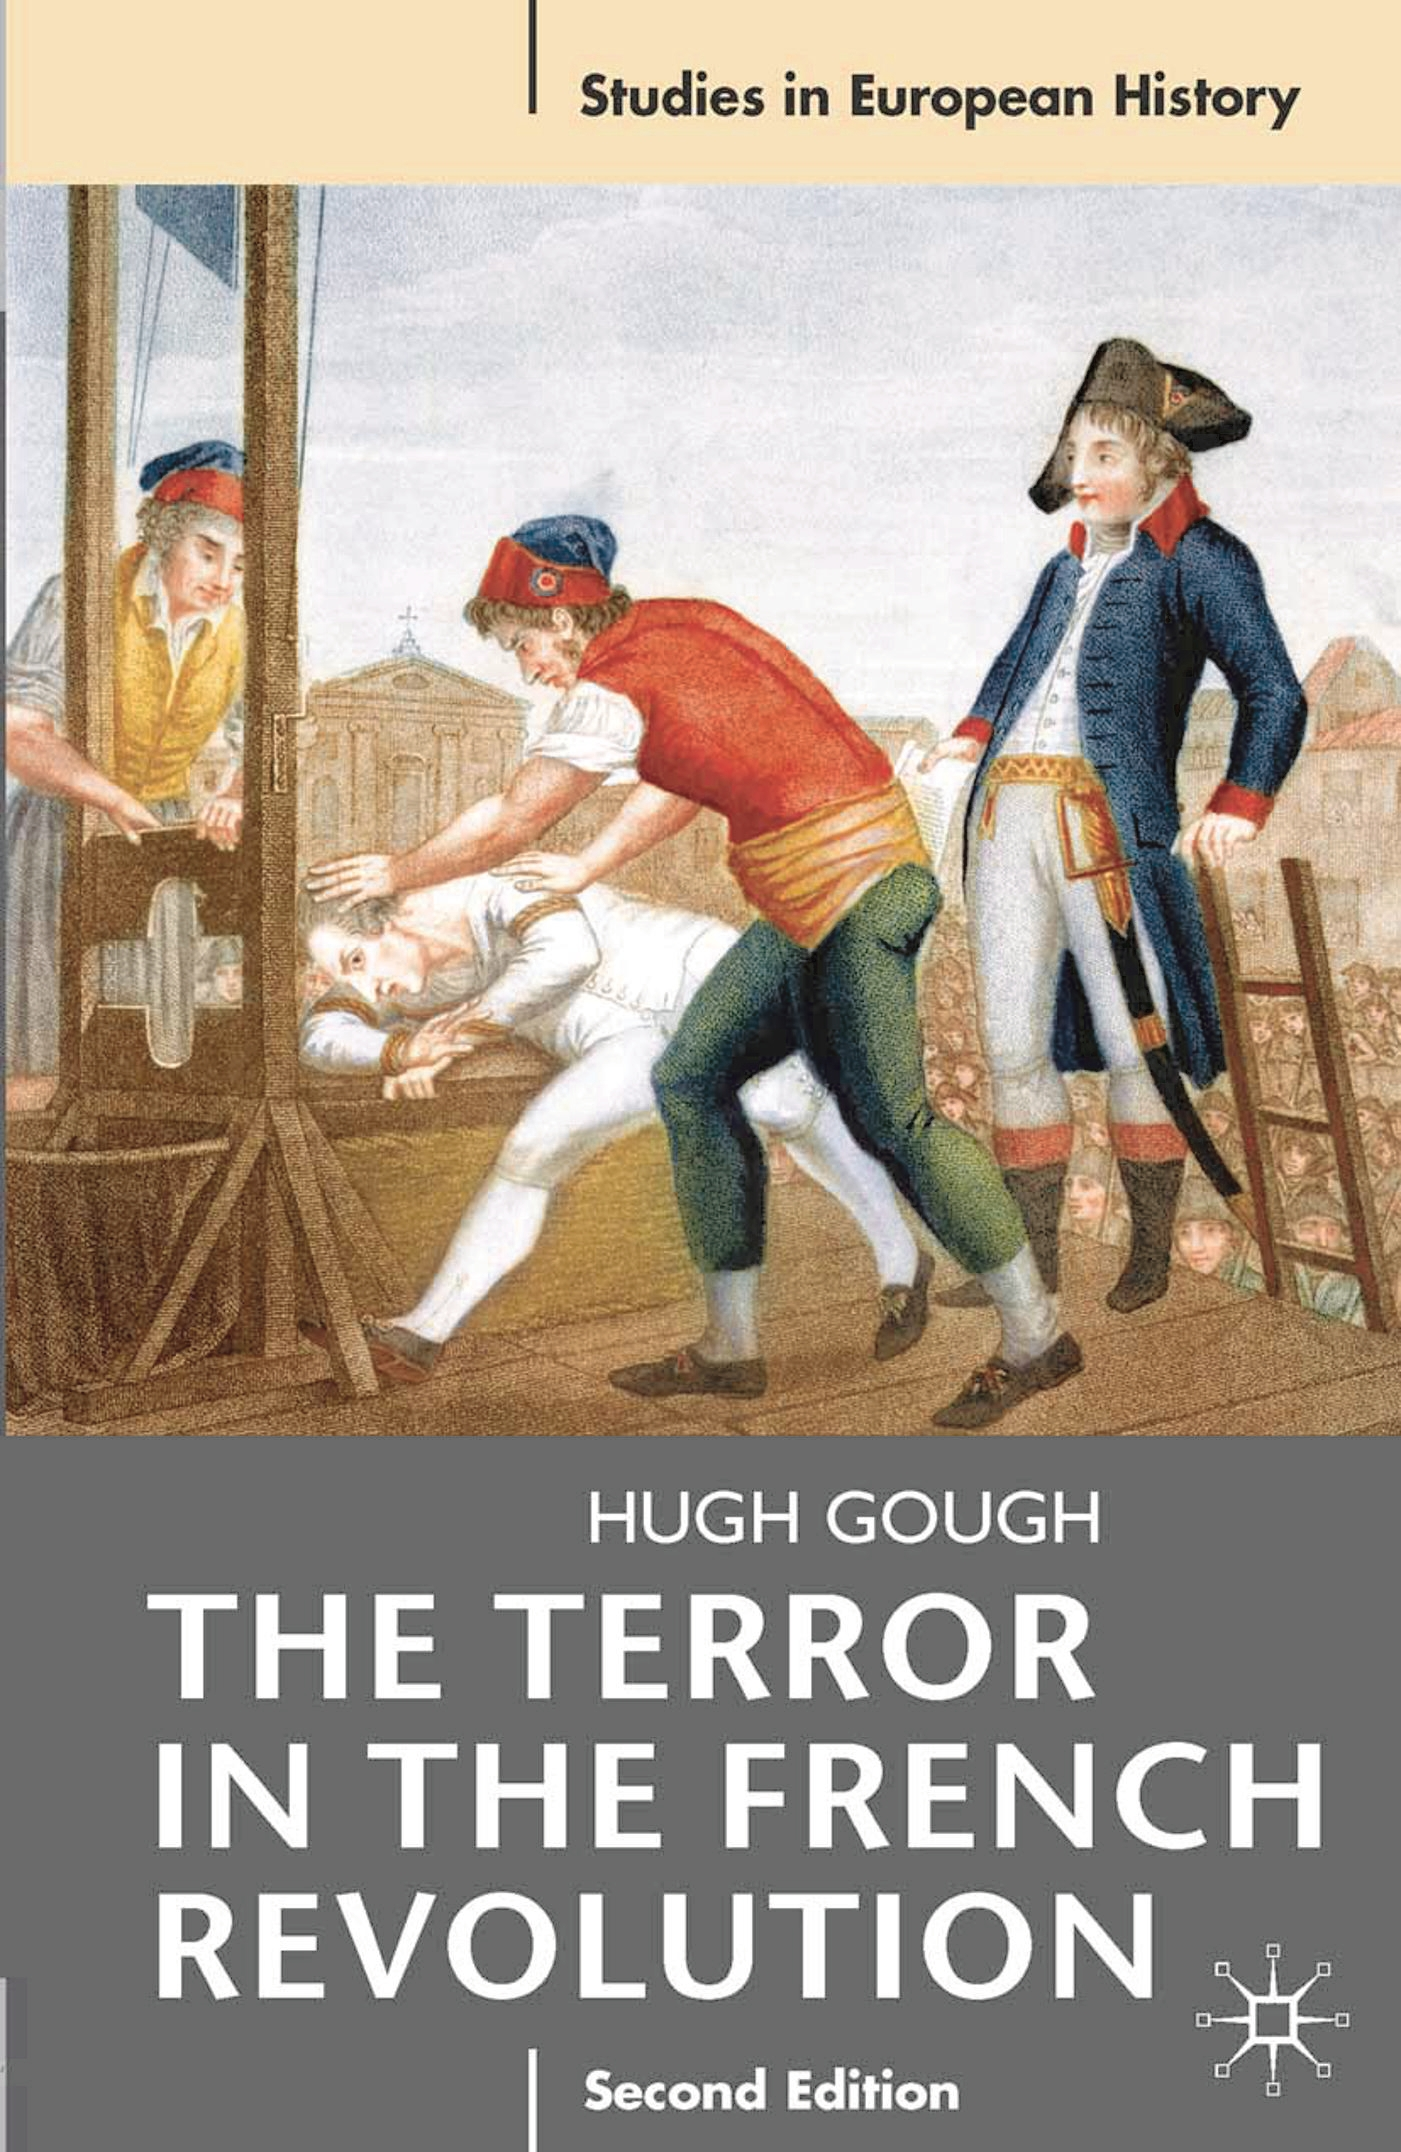 terrorism in the french revolution The terms terrorist and terrorism originated during the french revolution of the late 18th century.